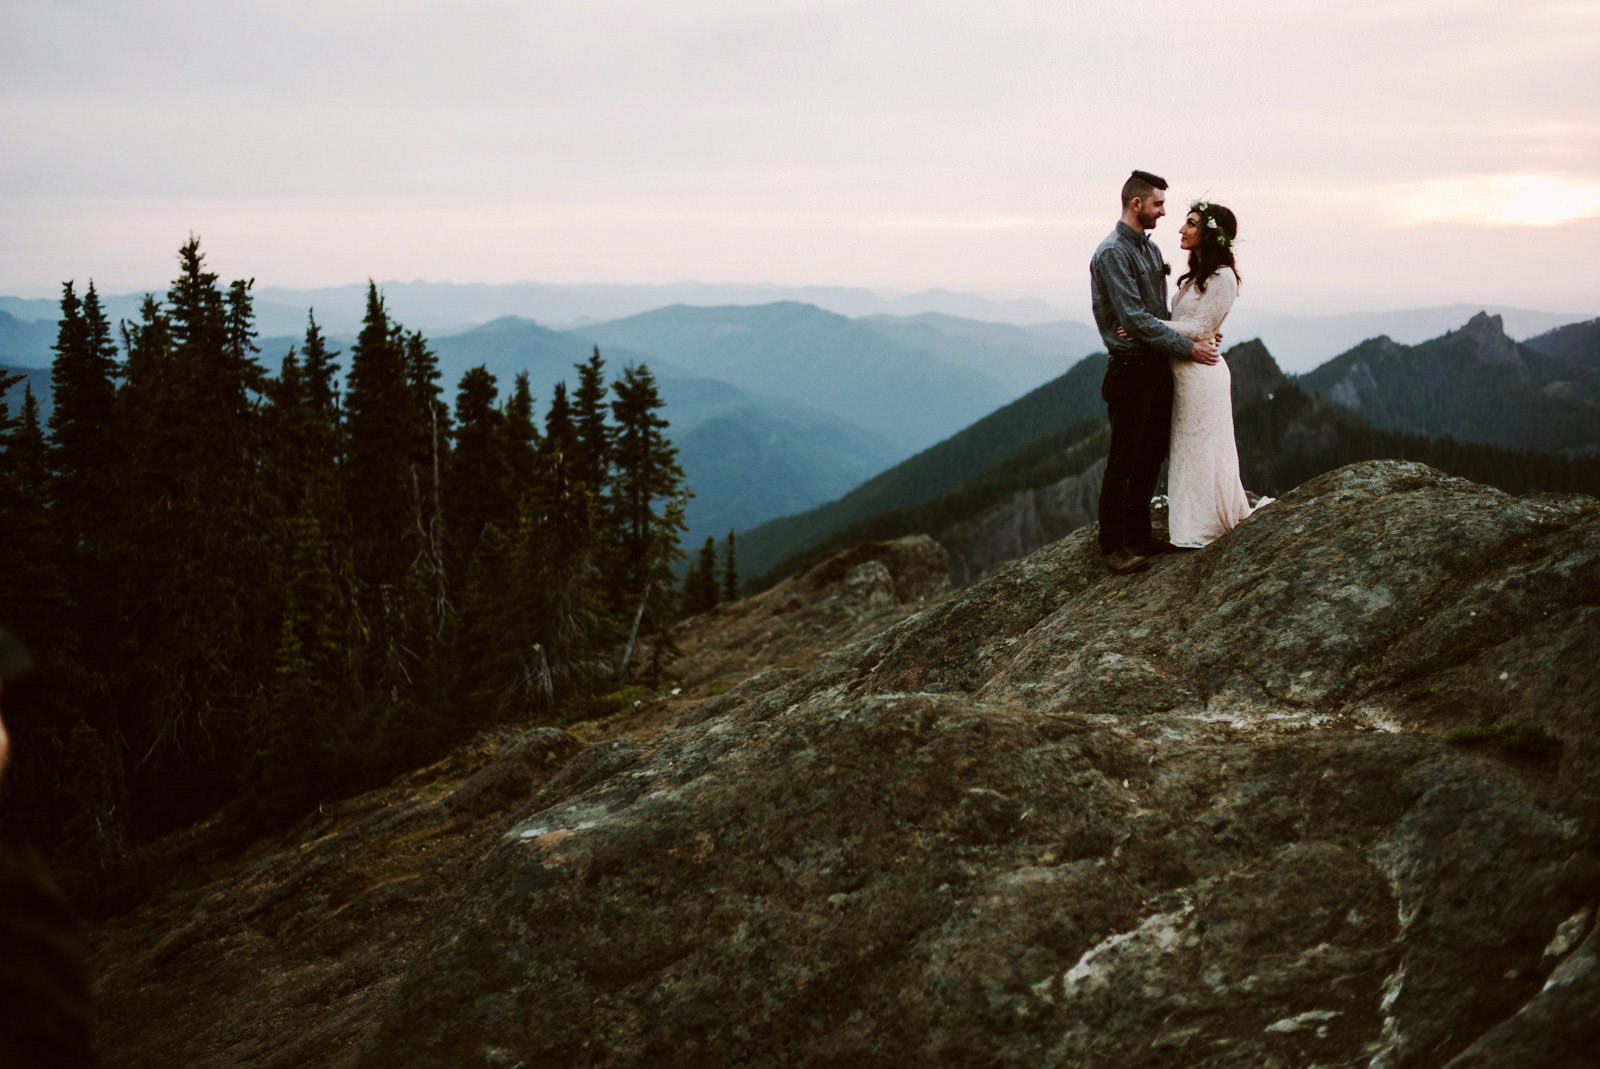 katelynnethan-blog-42-1 MOUNT RAINIER LOOKOUT ELOPEMENT